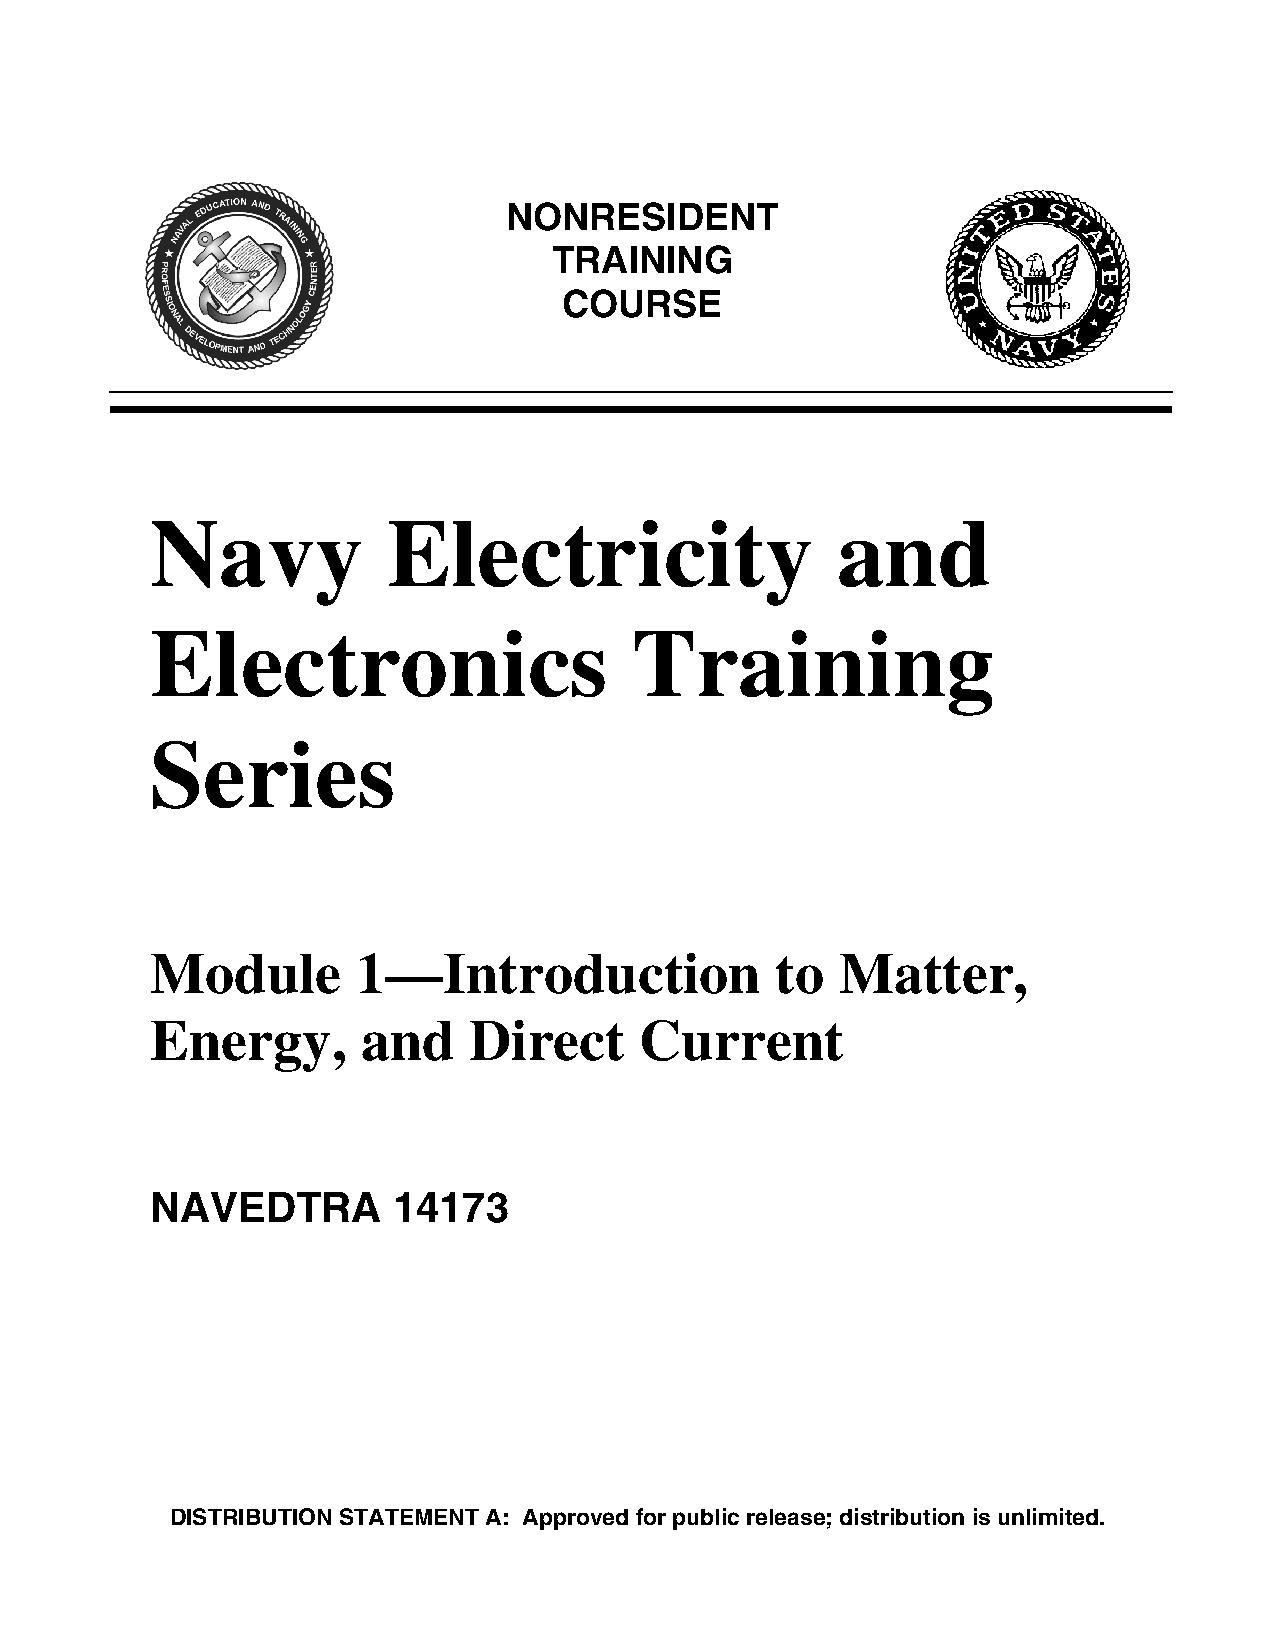 File:Navy Electricity and Electronics Training Series -Introduction